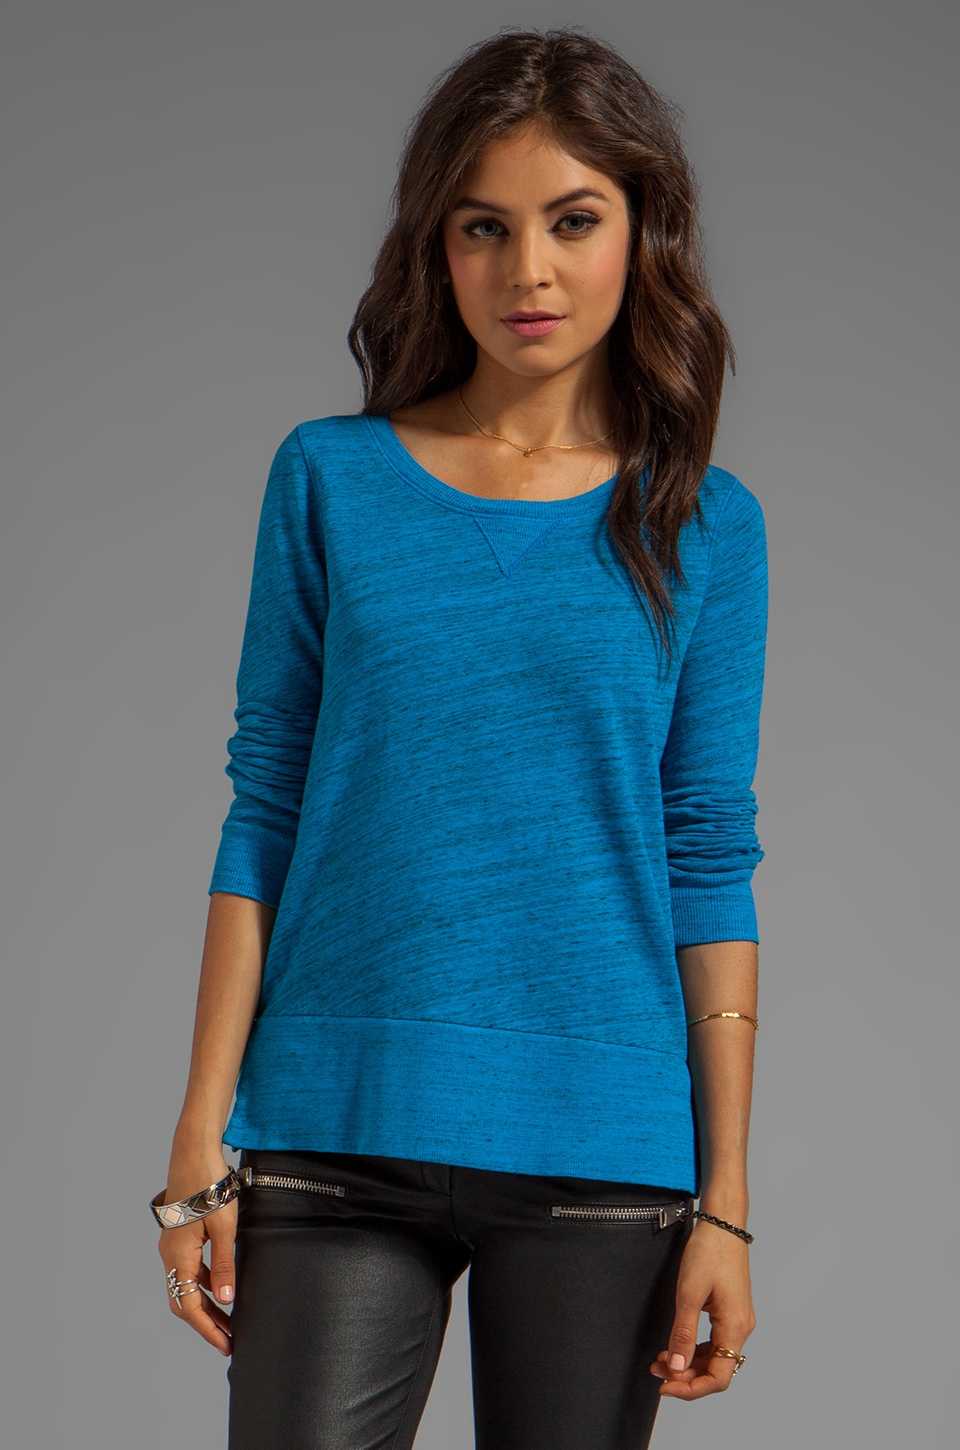 Splendid Space-Dyed Heather Active Pullover in Bright Azure